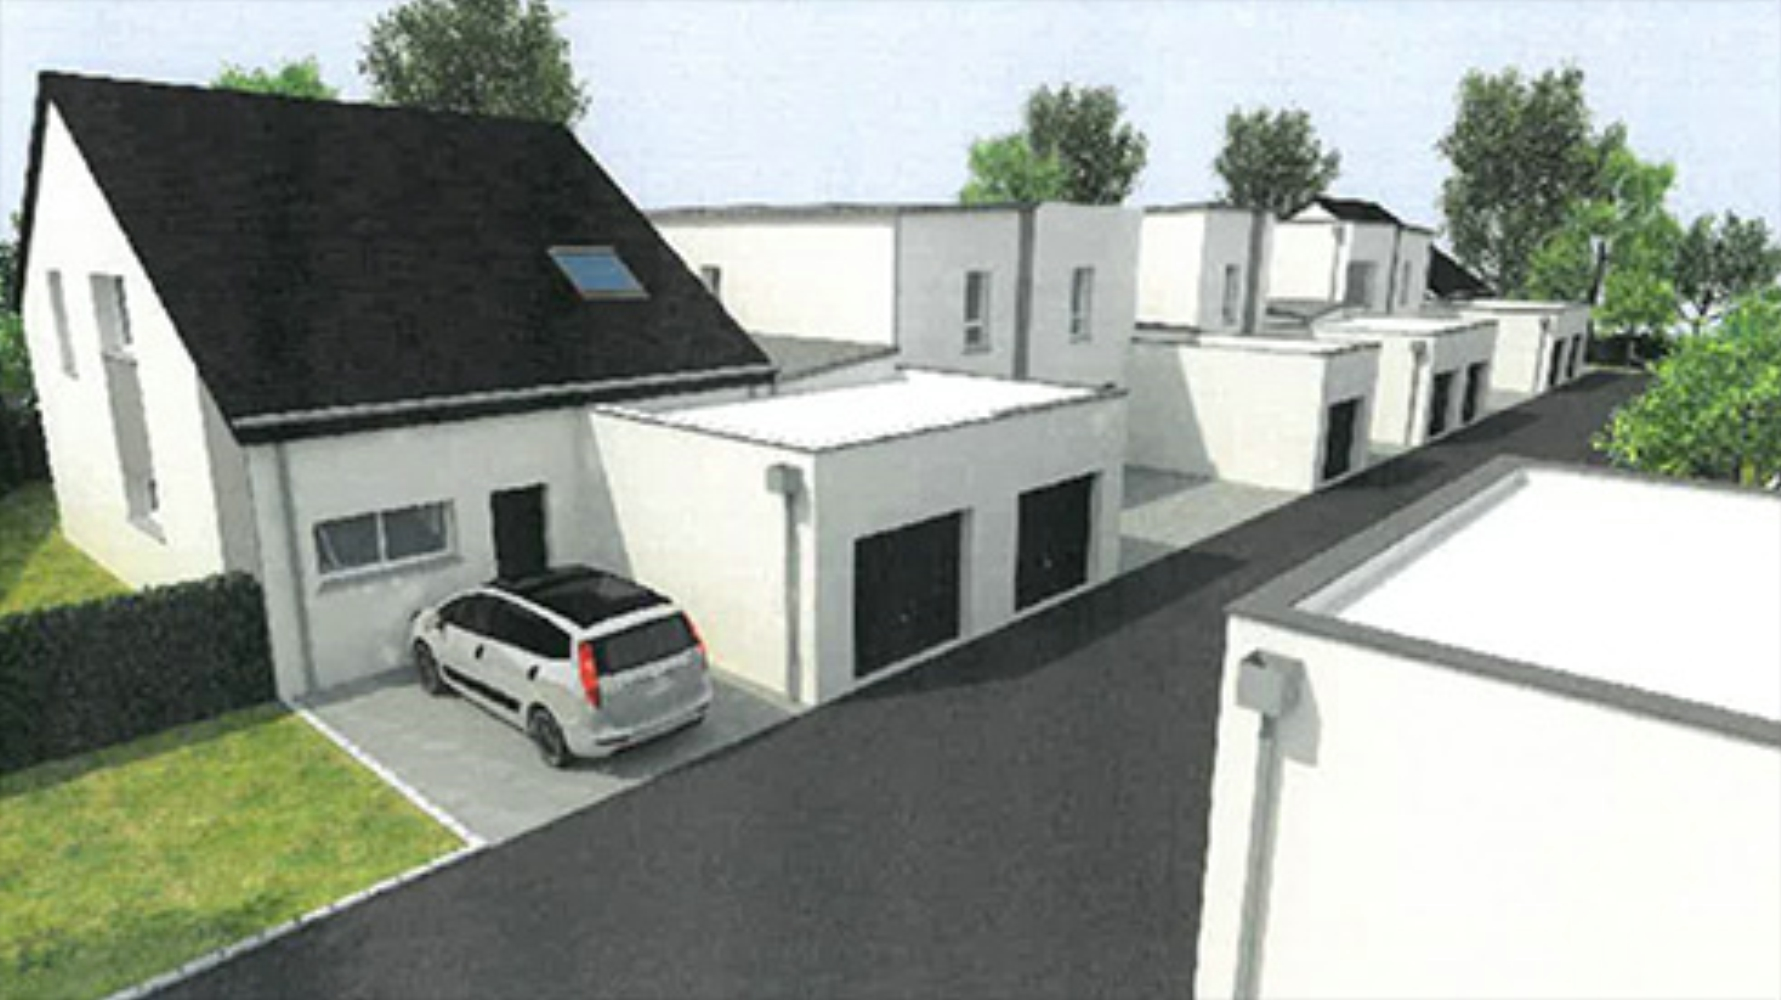 Maisons neuves cheap garantie de with maisons neuves for Apchq garantie maison neuve